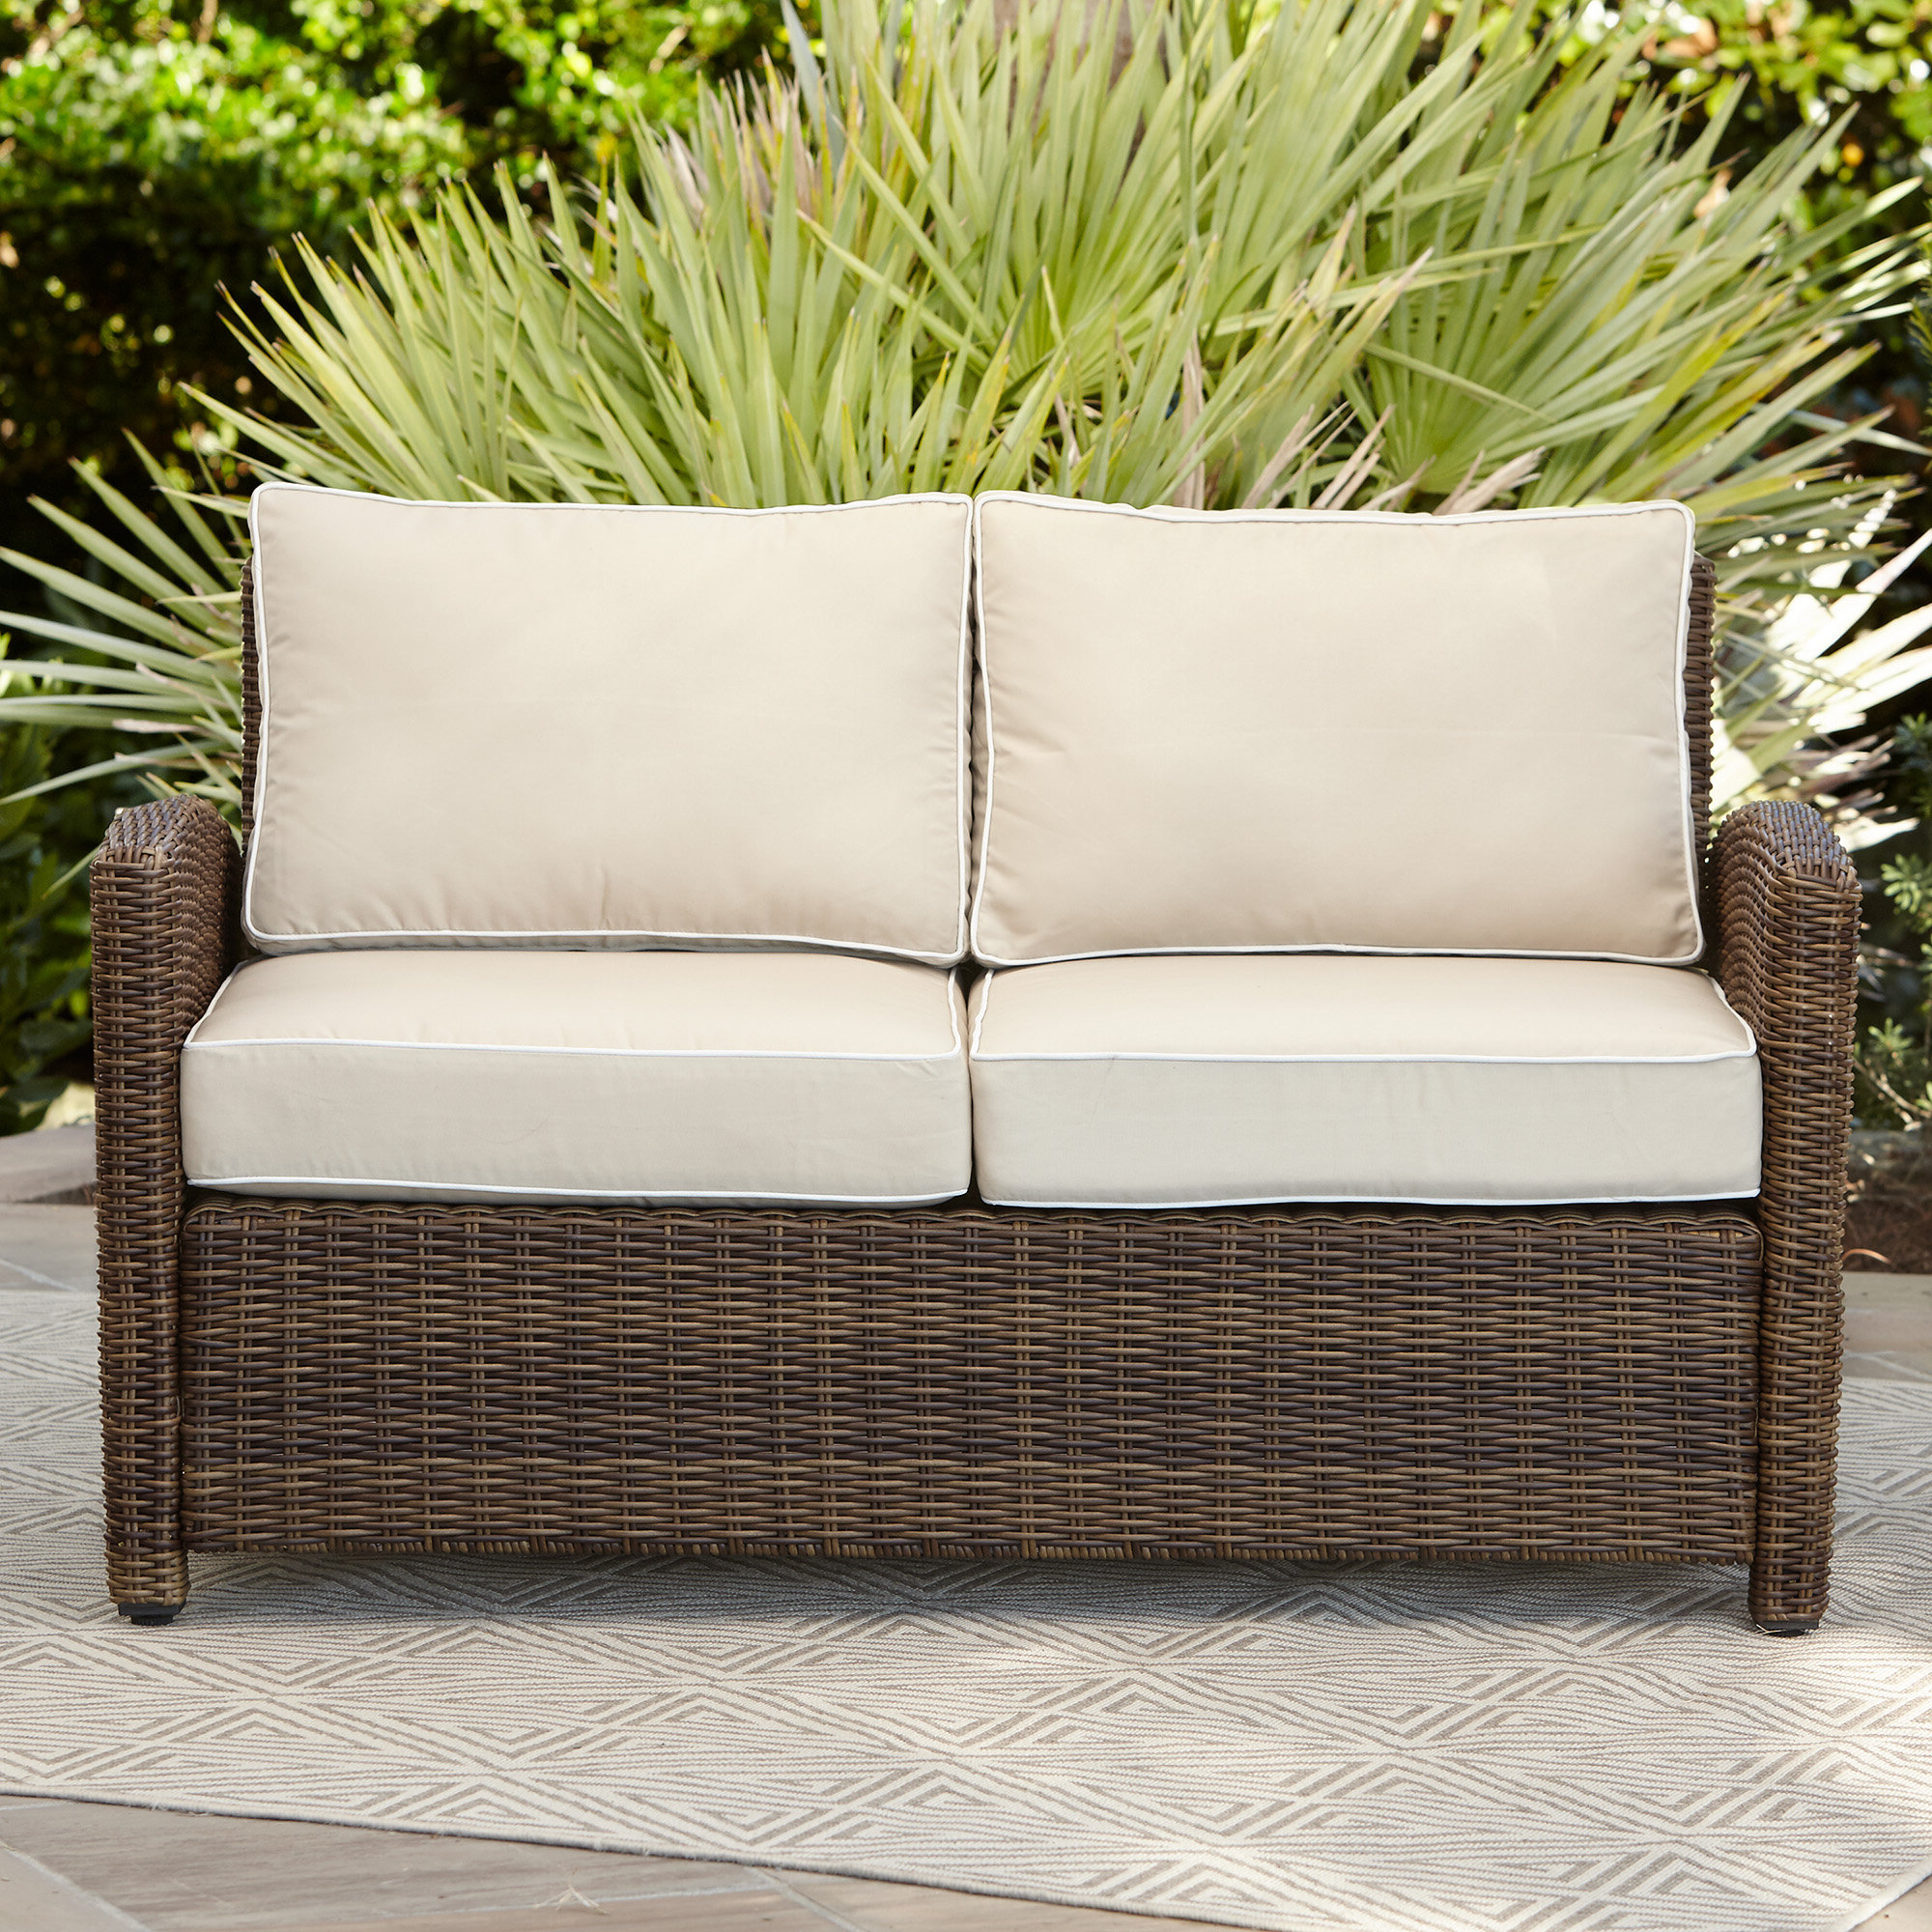 Most Recently Released Lawson Wicker Loveseat With Cushions In Lawson Wicker Loveseats With Cushions (Gallery 4 of 25)